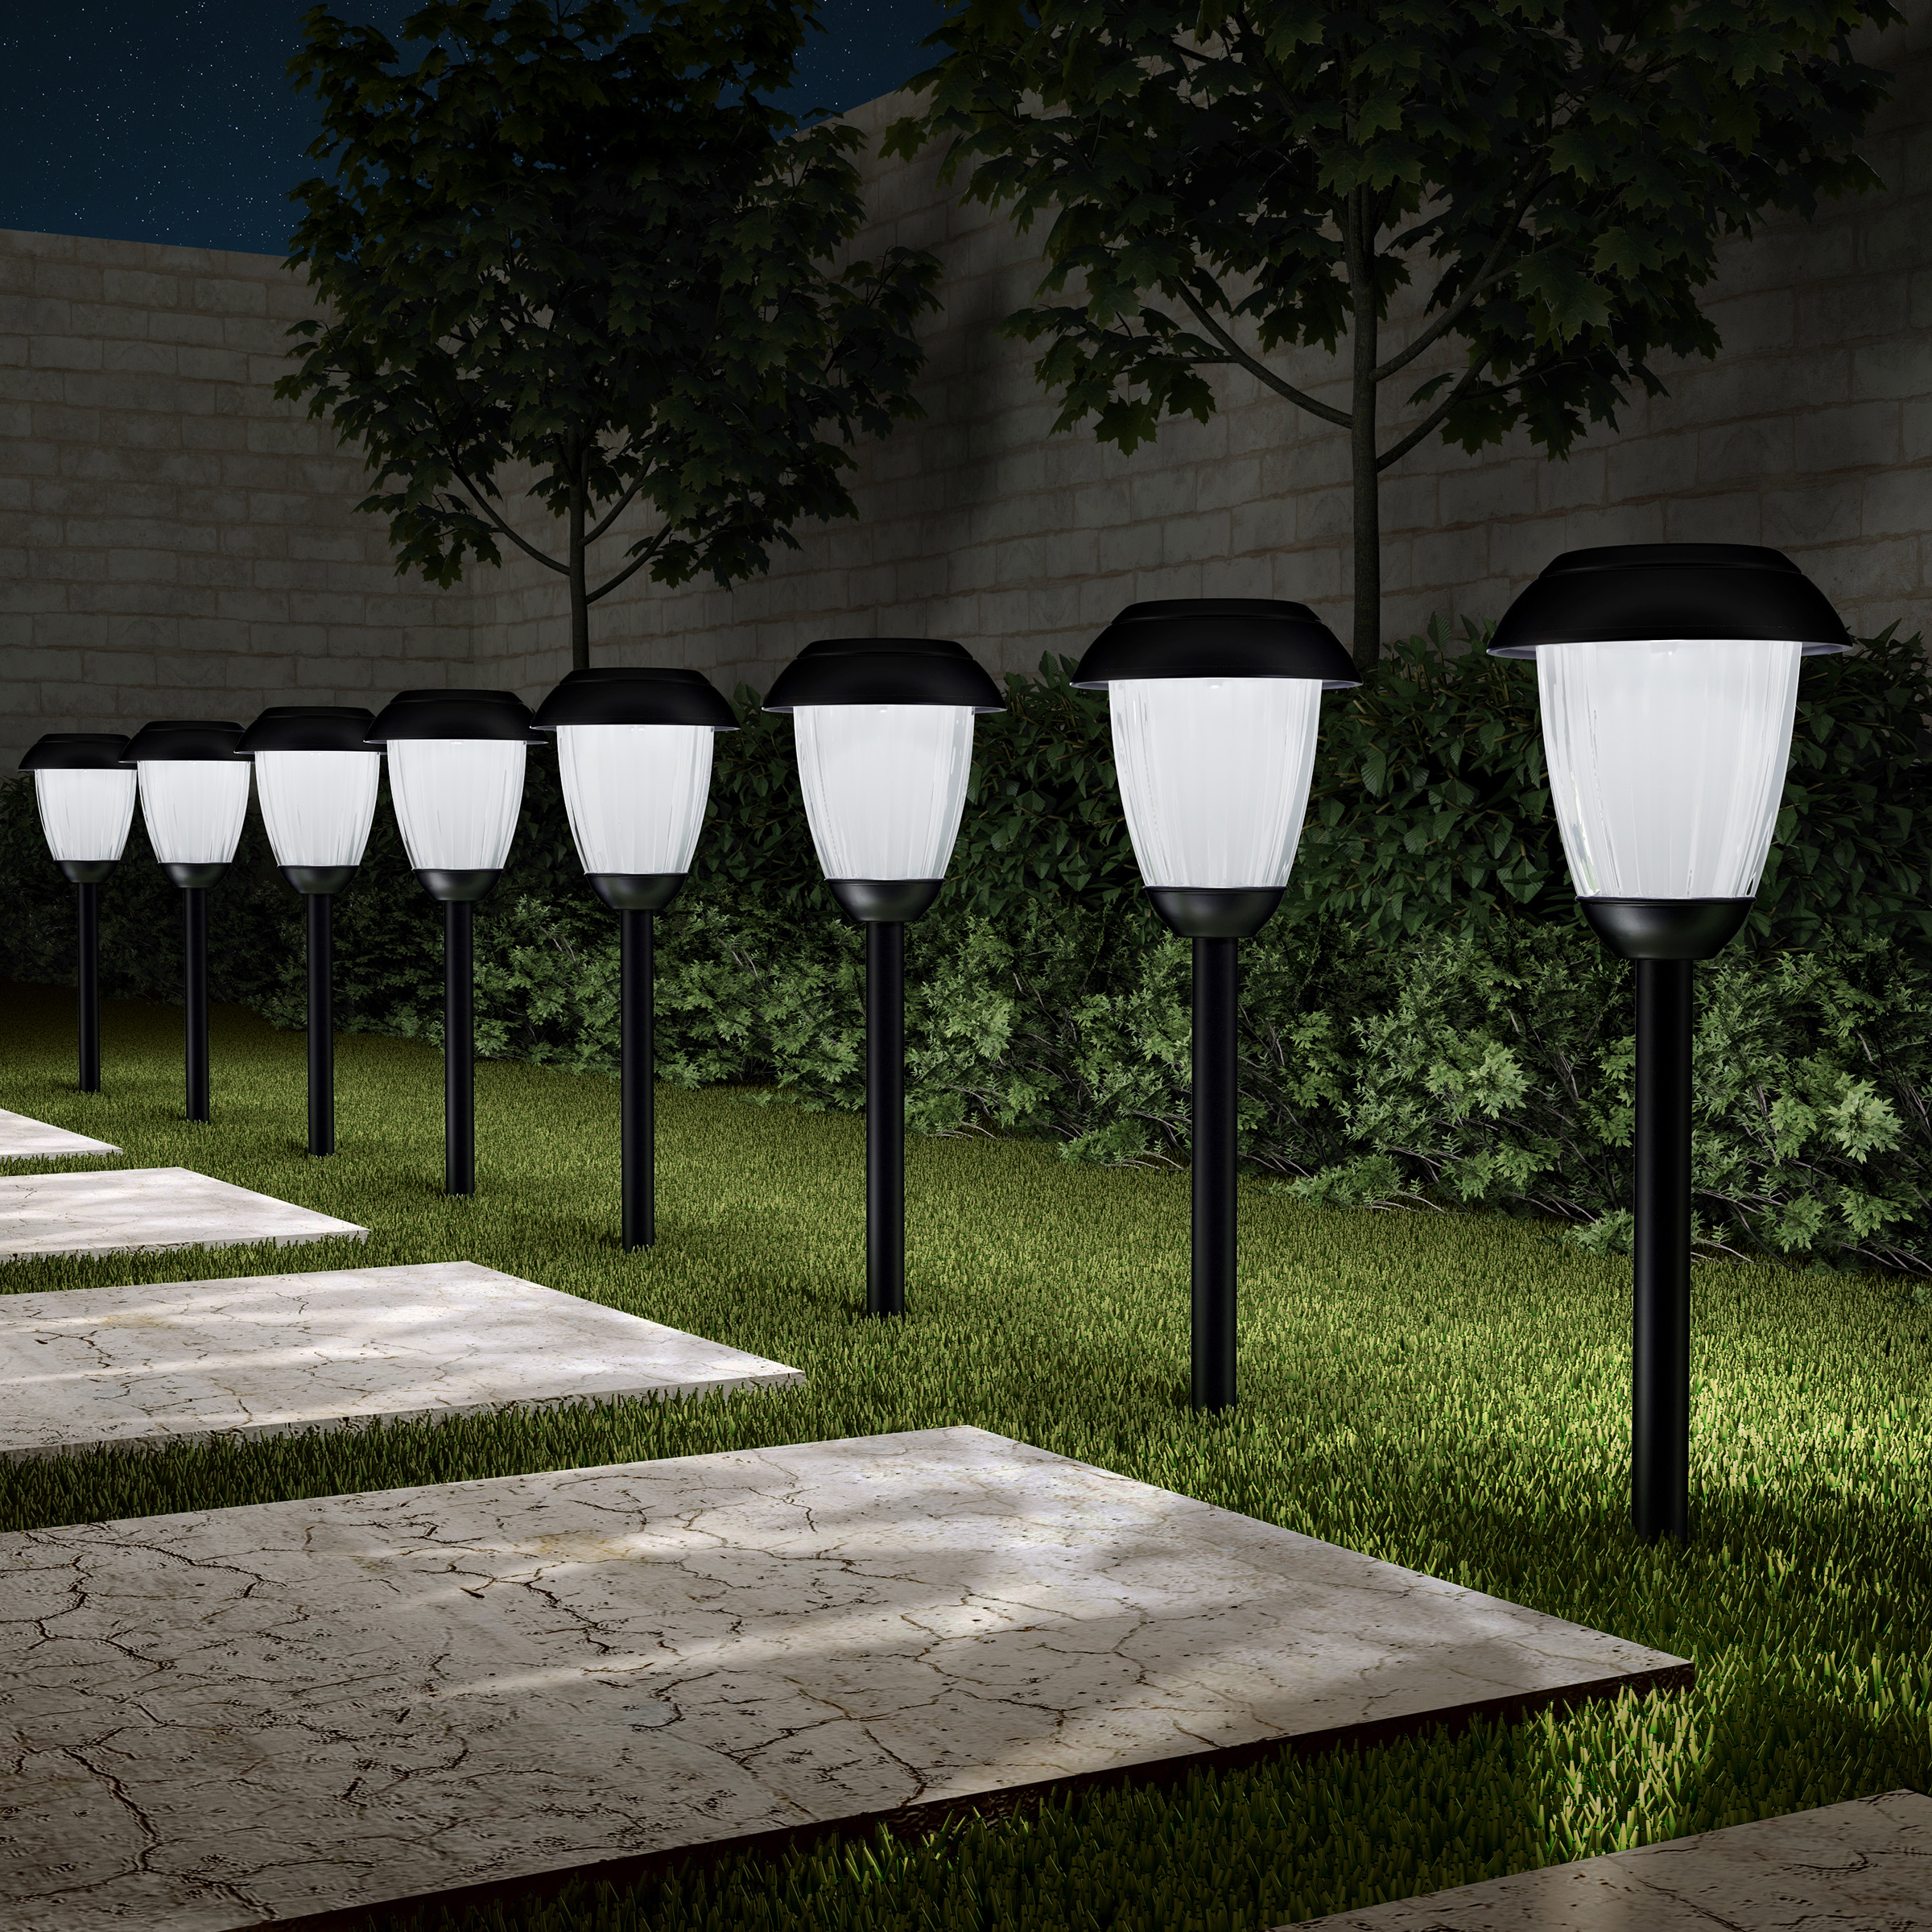 """Solar Path Lights, Set of 8- 16"""" Tall Stainless Steel Outdoor Stake Lighting for Garden, Landscape, Yard, Driveway, Walkway by Pure Garden (Copper)"""